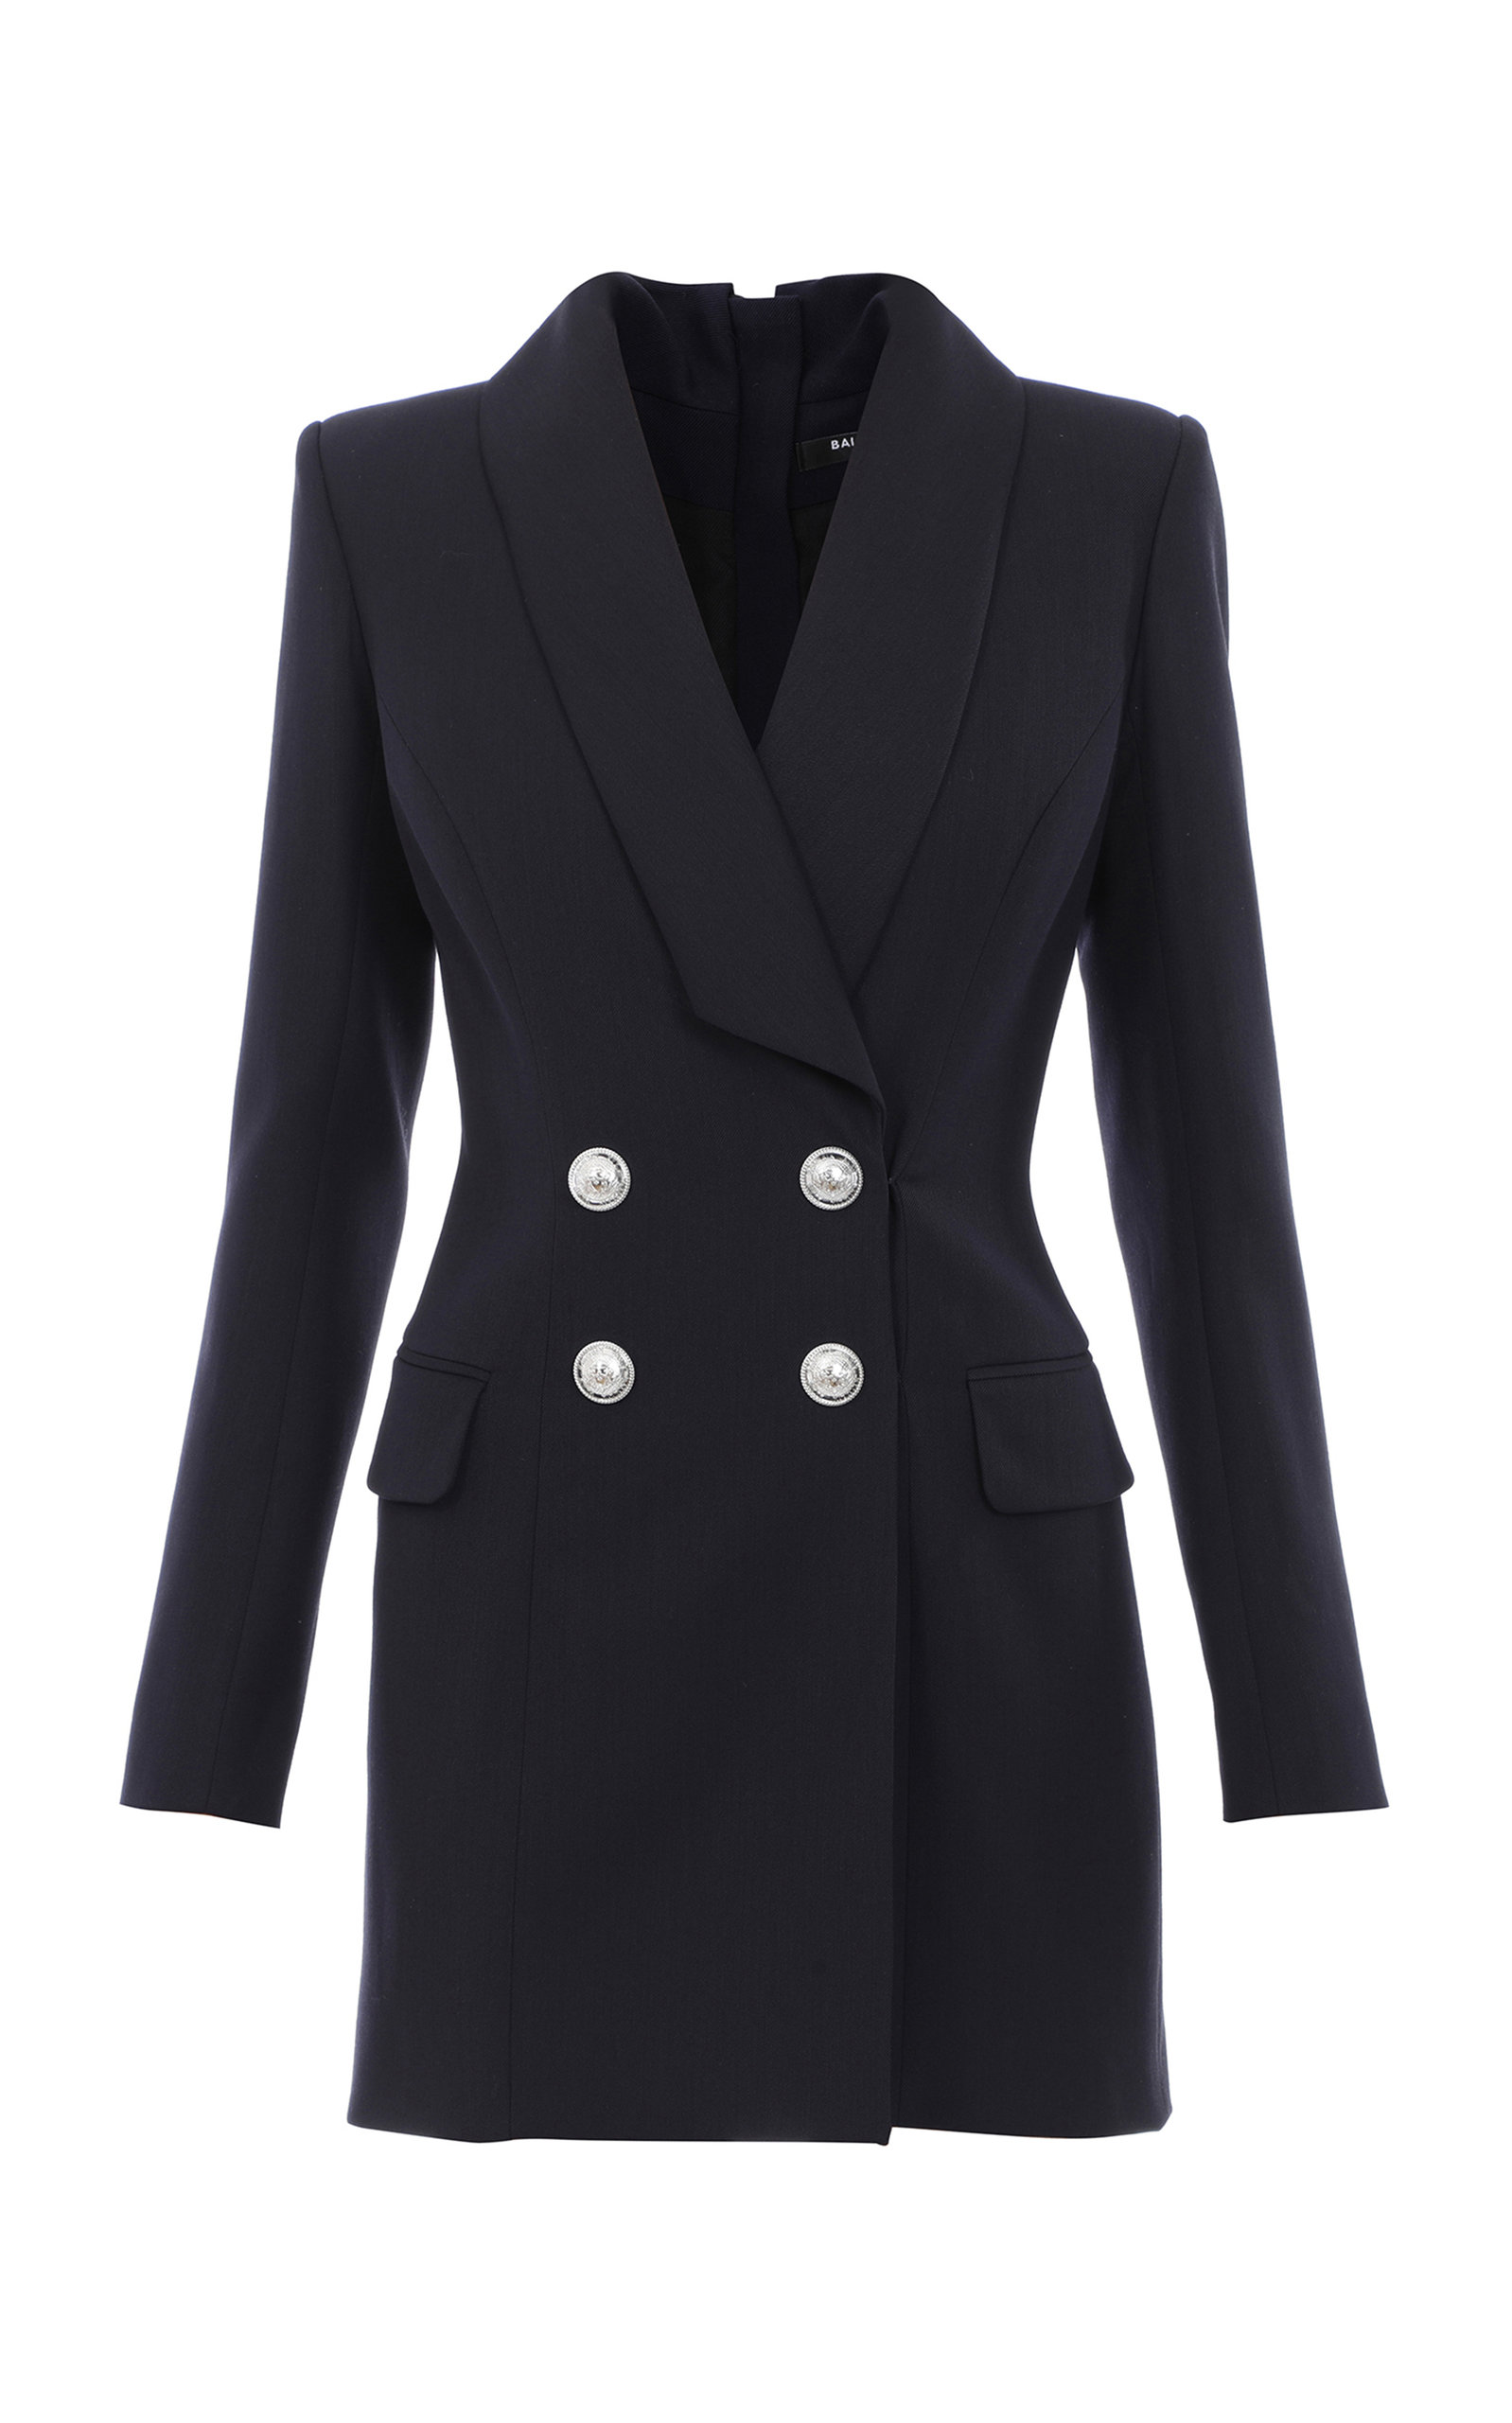 Buy Balmain Double-Breasted Mini Blazer Dress online, shop Balmain at the best price